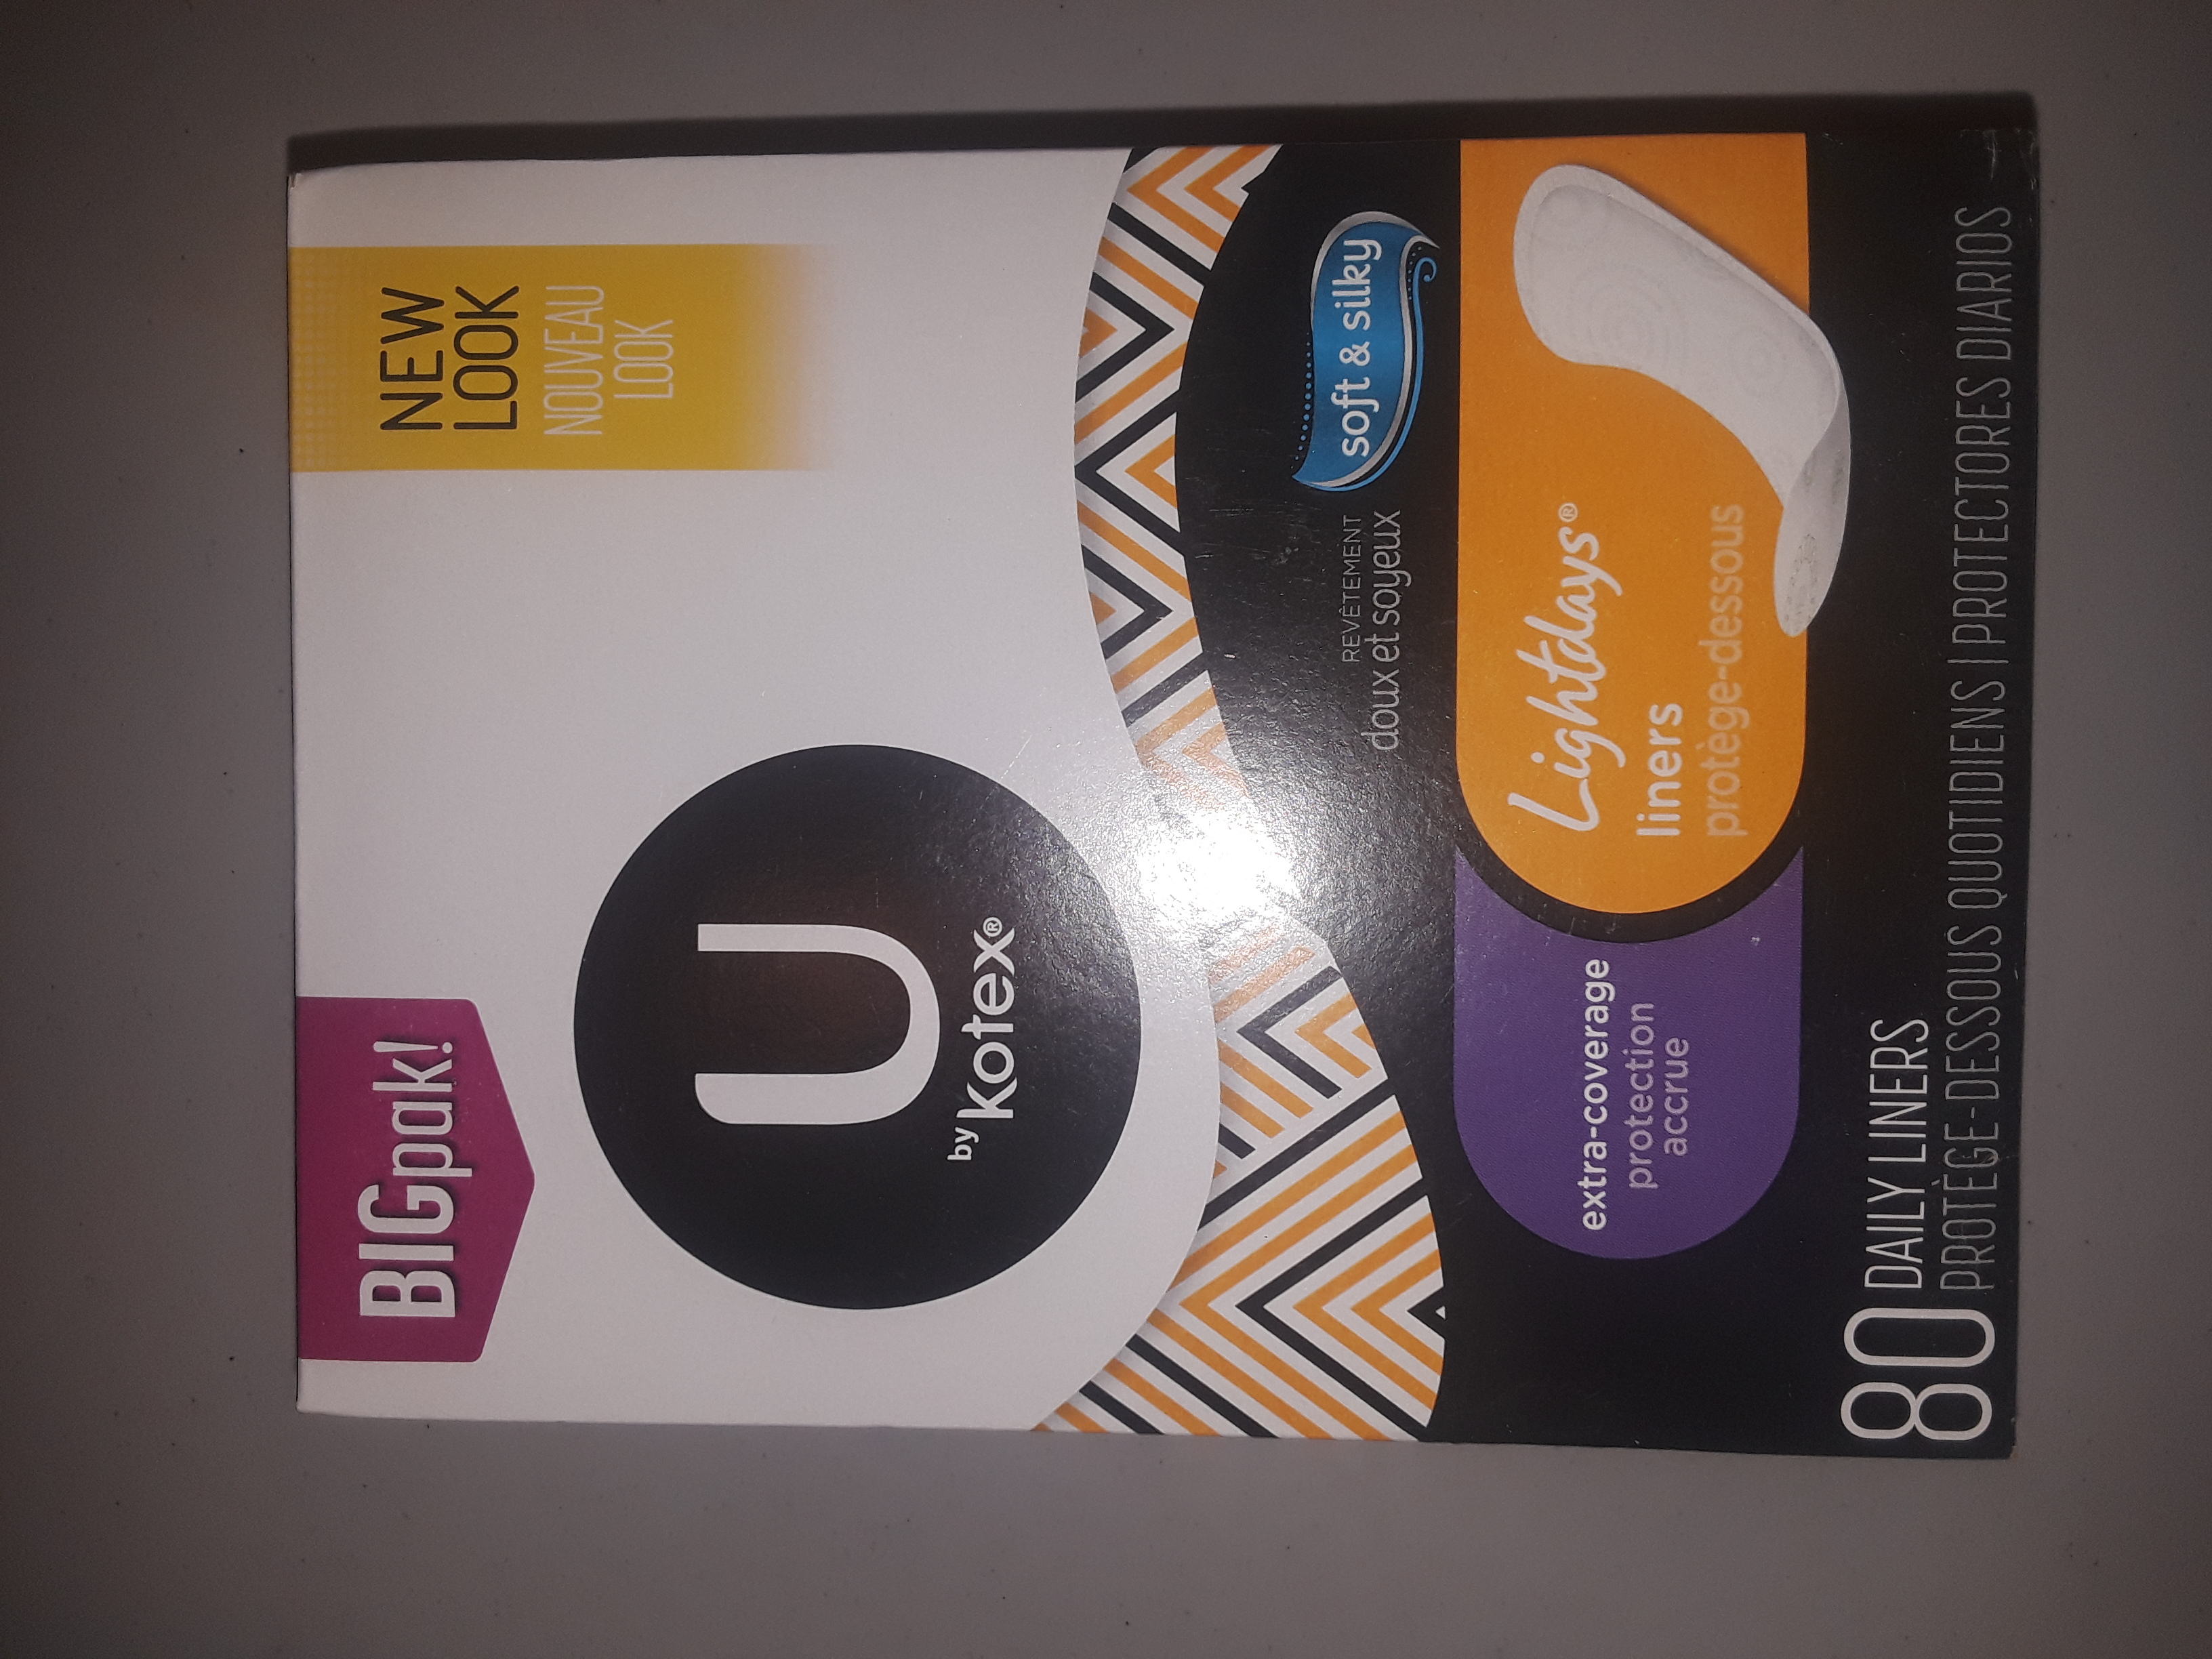 U by Kotex light-days liners 80 count